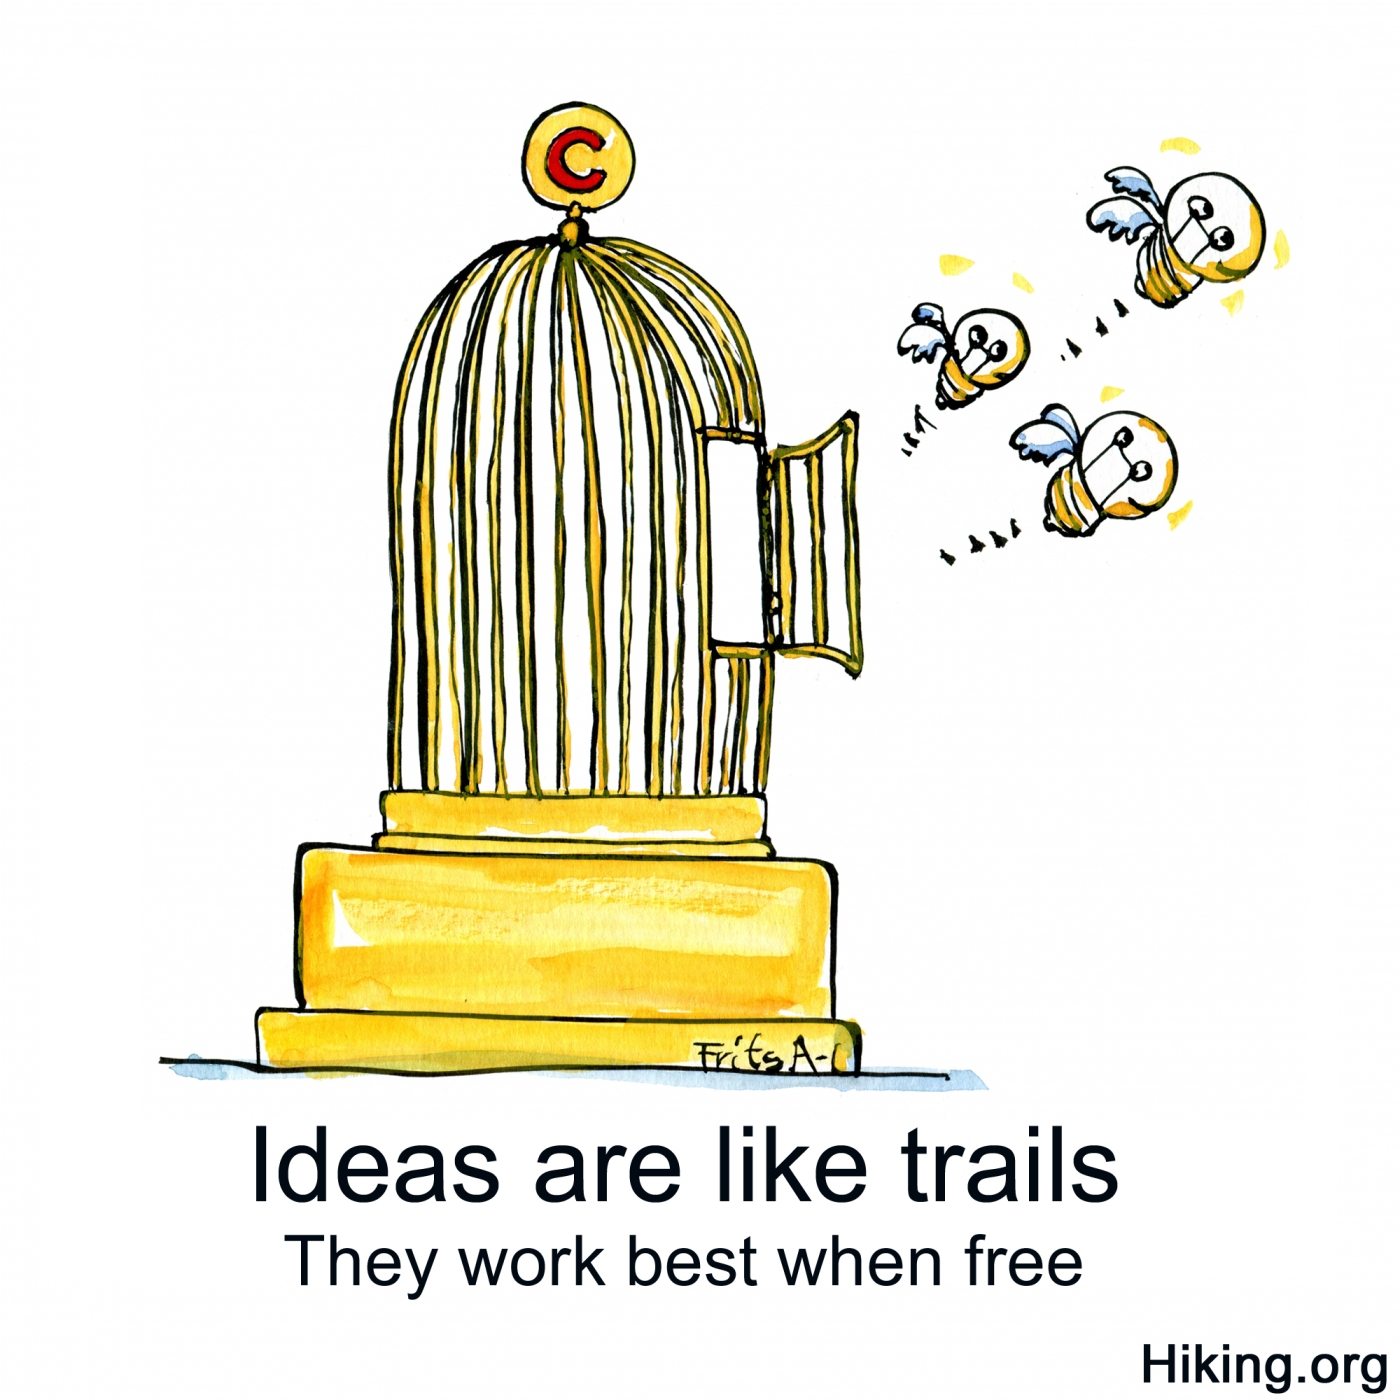 Ideas flying out of golden cage